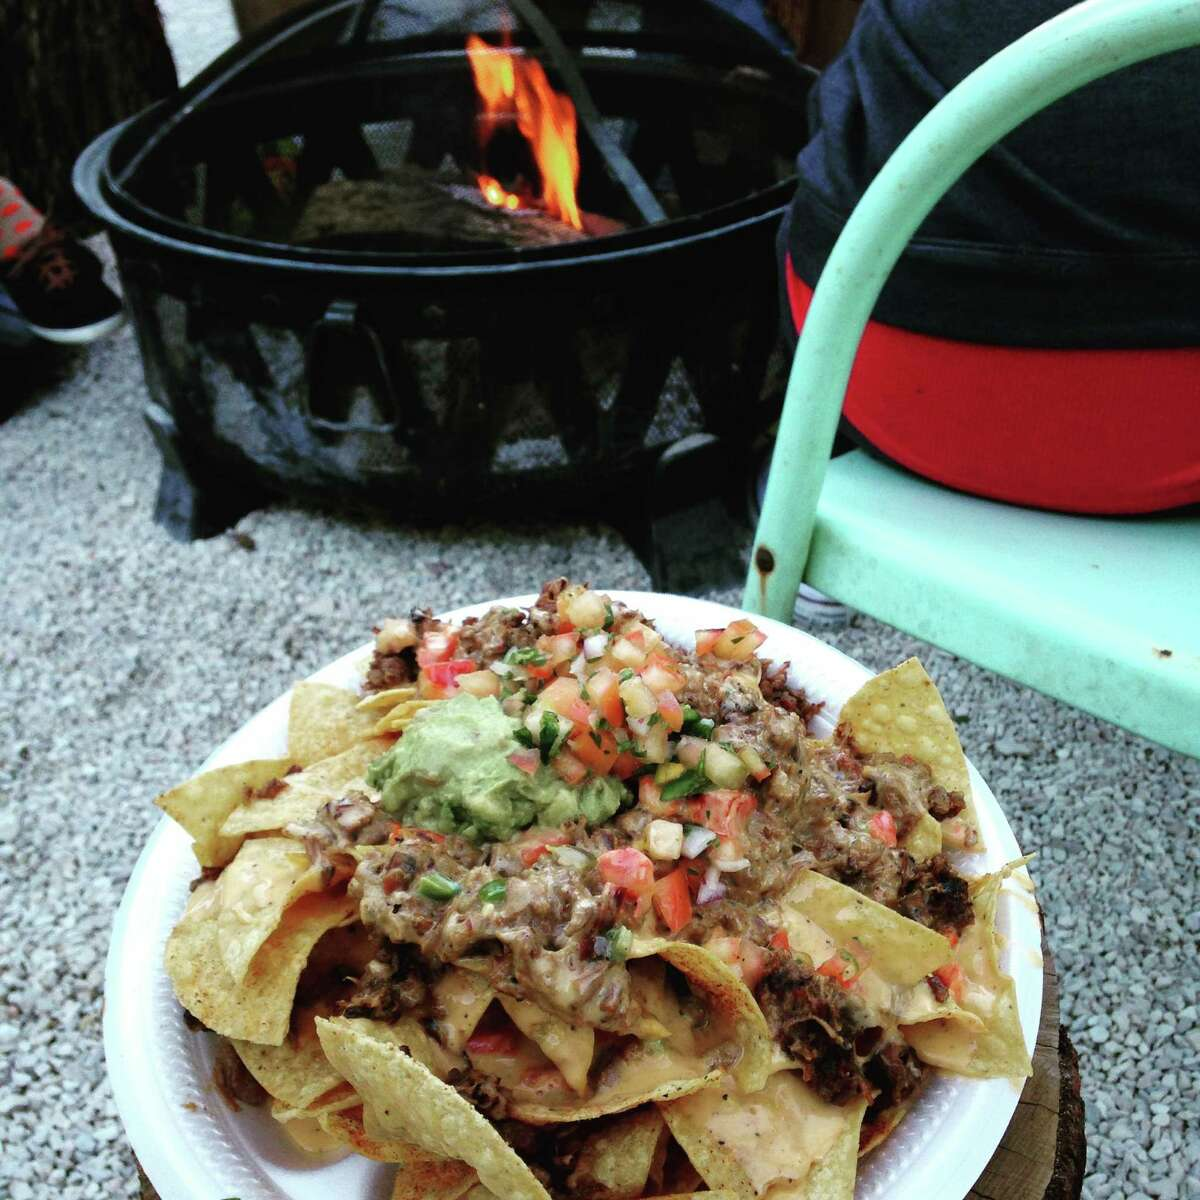 Brisket nachos from The Pigpen, 106 Pershing Ave.